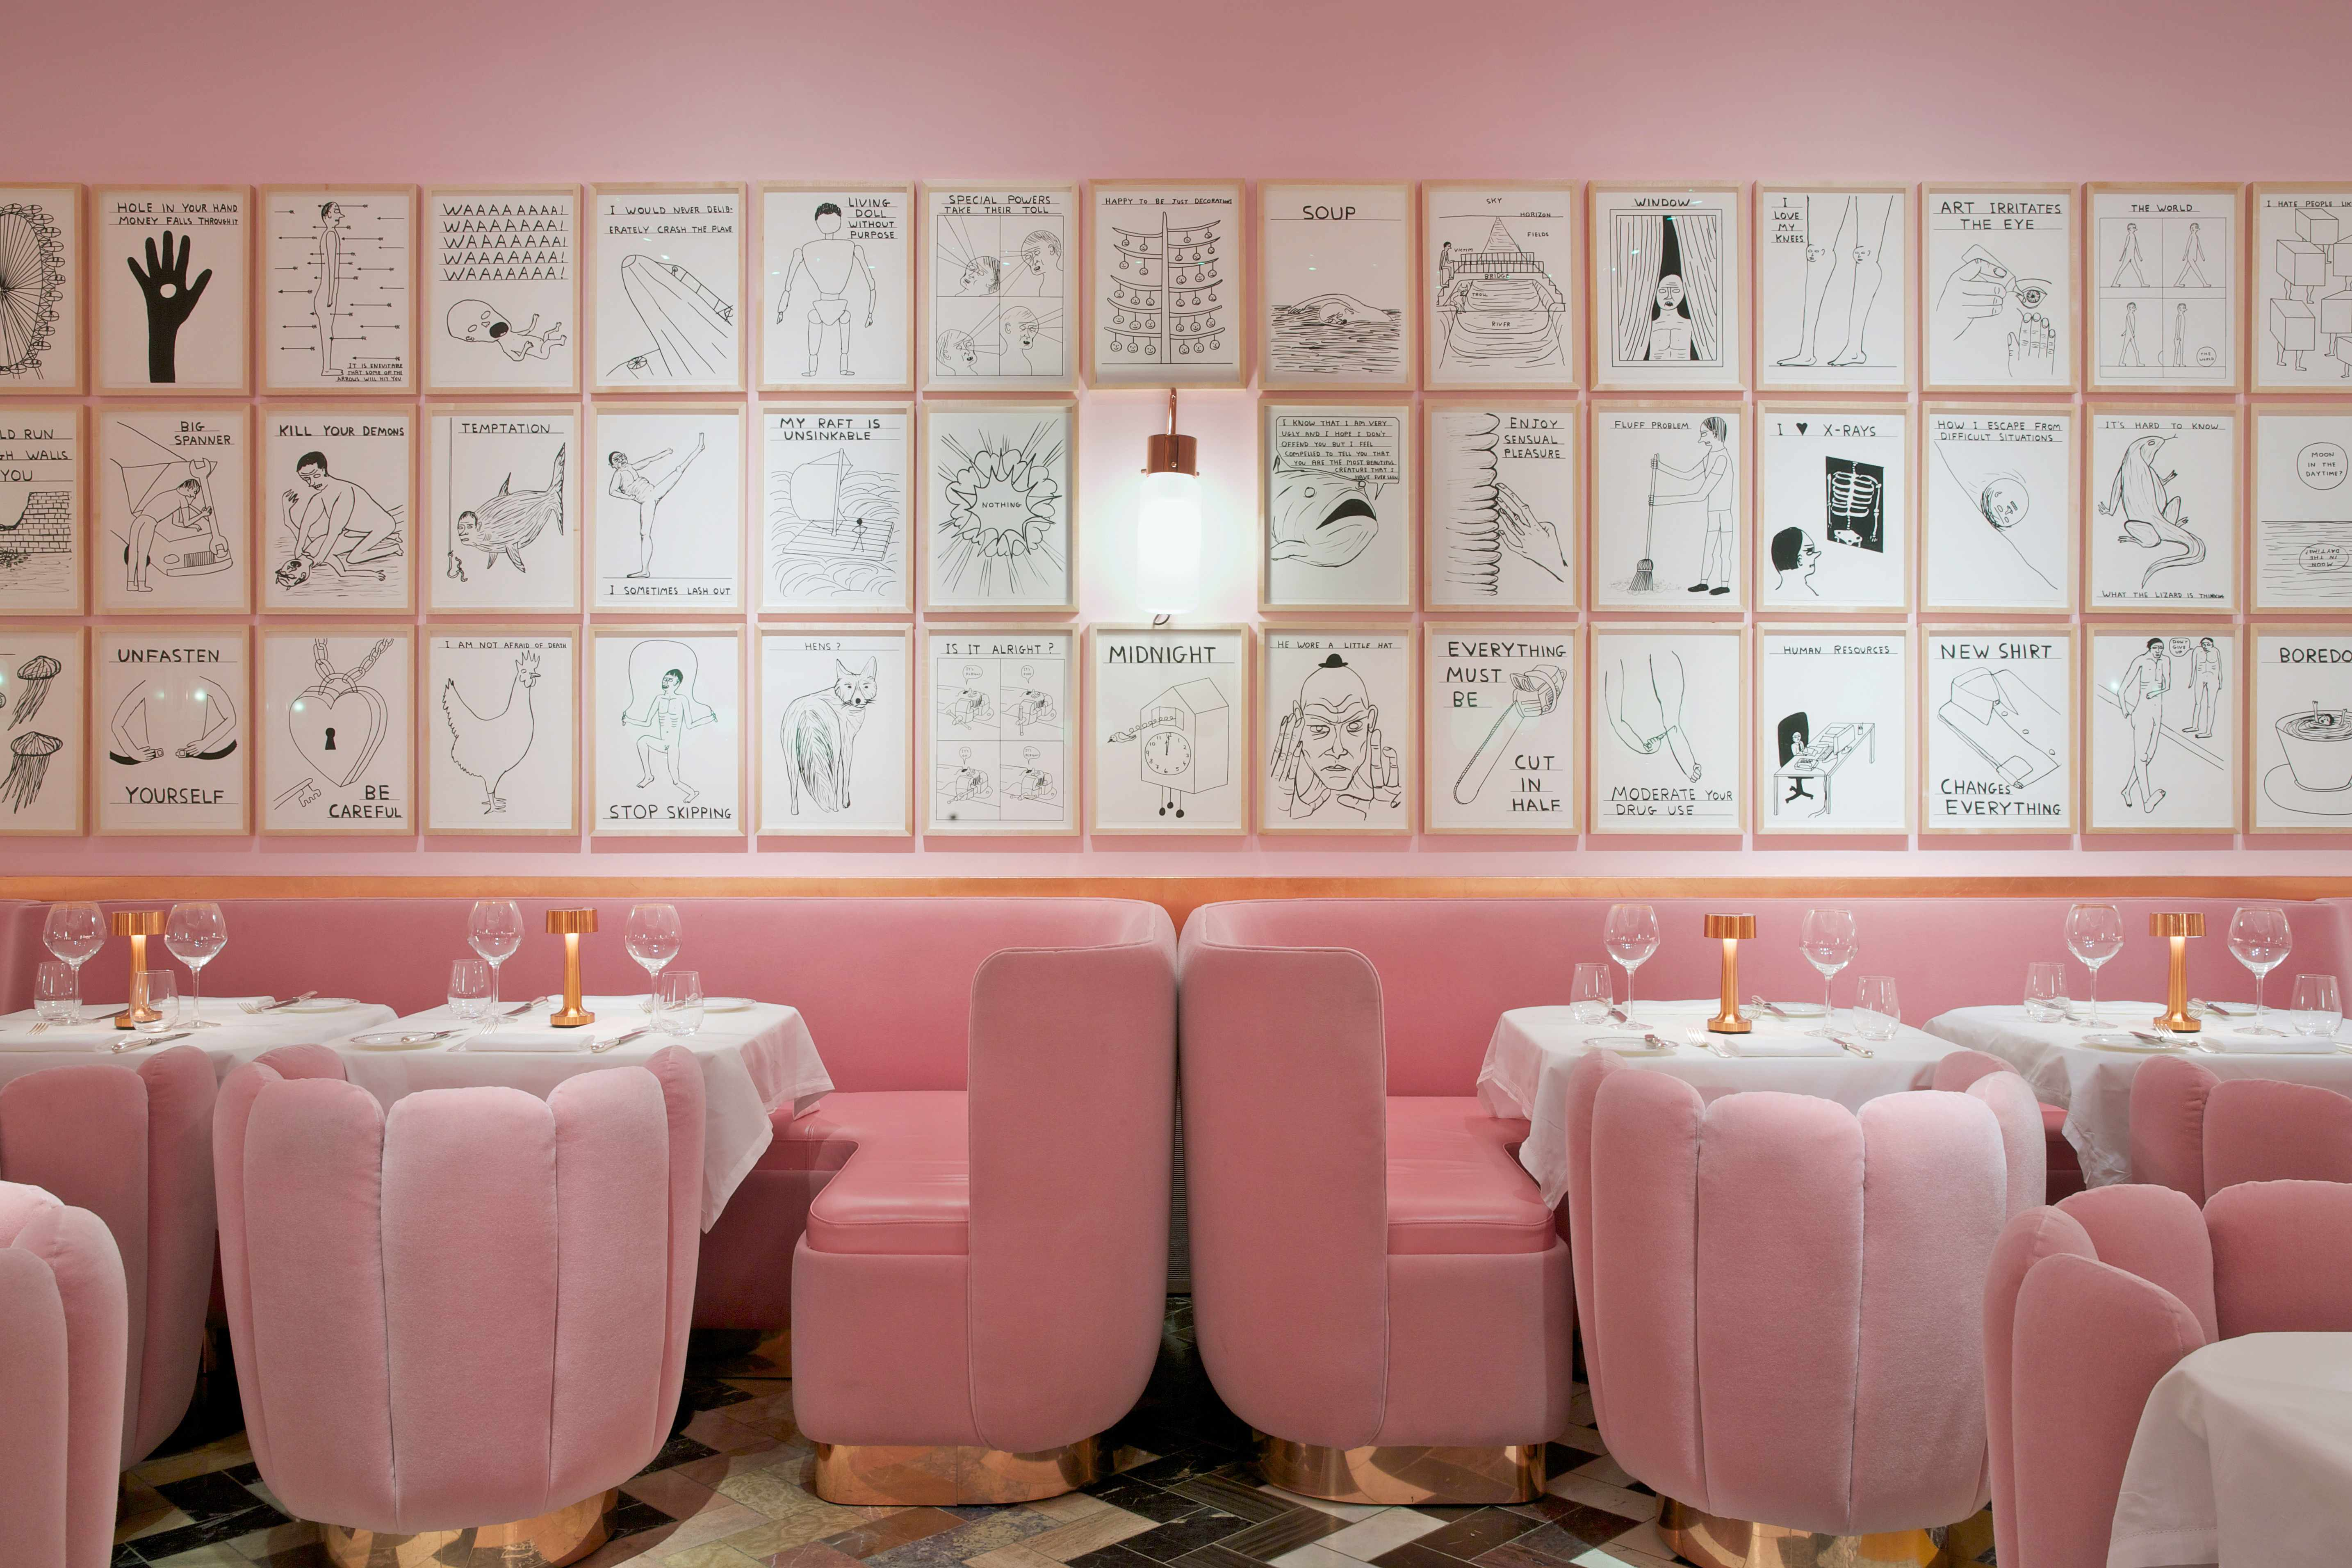 Sketch London: Afternoon Tea Review